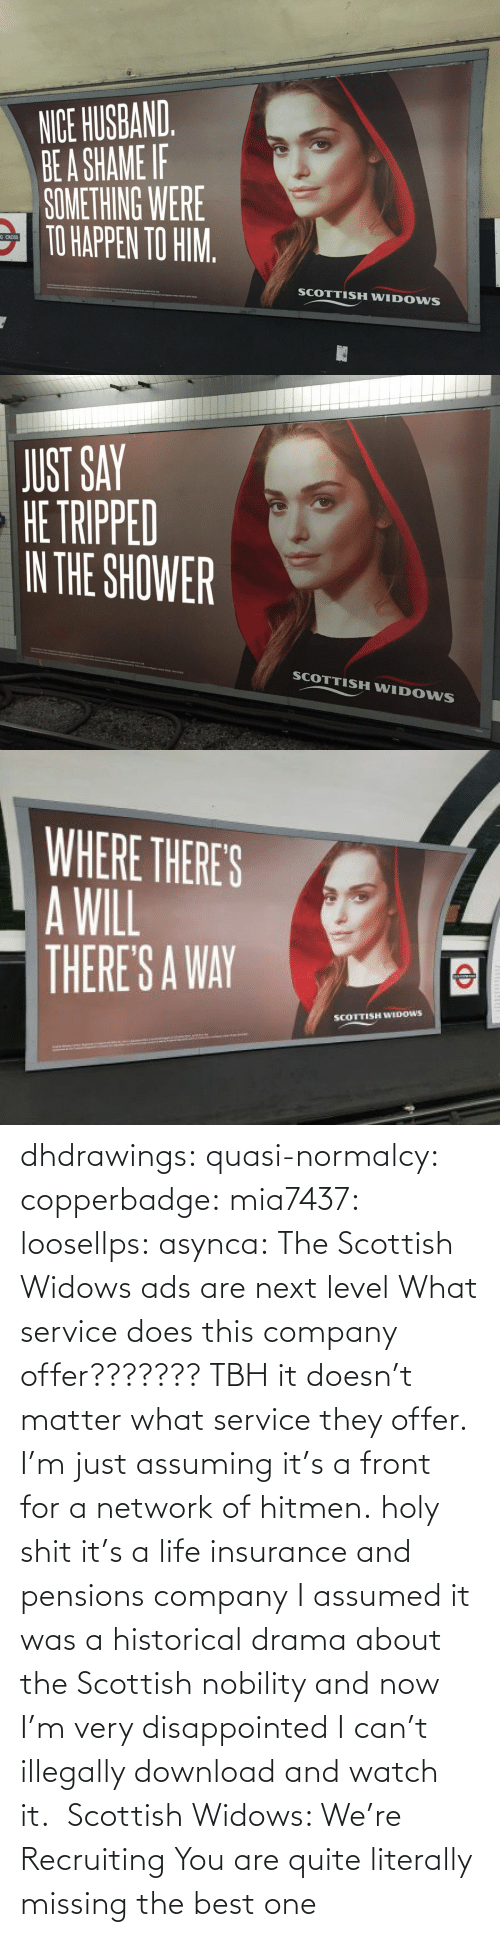 Wiki: dhdrawings:  quasi-normalcy:  copperbadge:  mia7437:  loosellps:  asynca: The Scottish Widows ads are next level What service does this company offer??????? TBH it doesn't matter what service they offer. I'm just assuming it's a front for a network of hitmen.  holy shit it's a life insurance and pensions company  I assumed it was a historical drama about the Scottish nobility and now I'm very disappointed I can't illegally download and watch it.     Scottish Widows: We're Recruiting    You are quite literally missing the best one